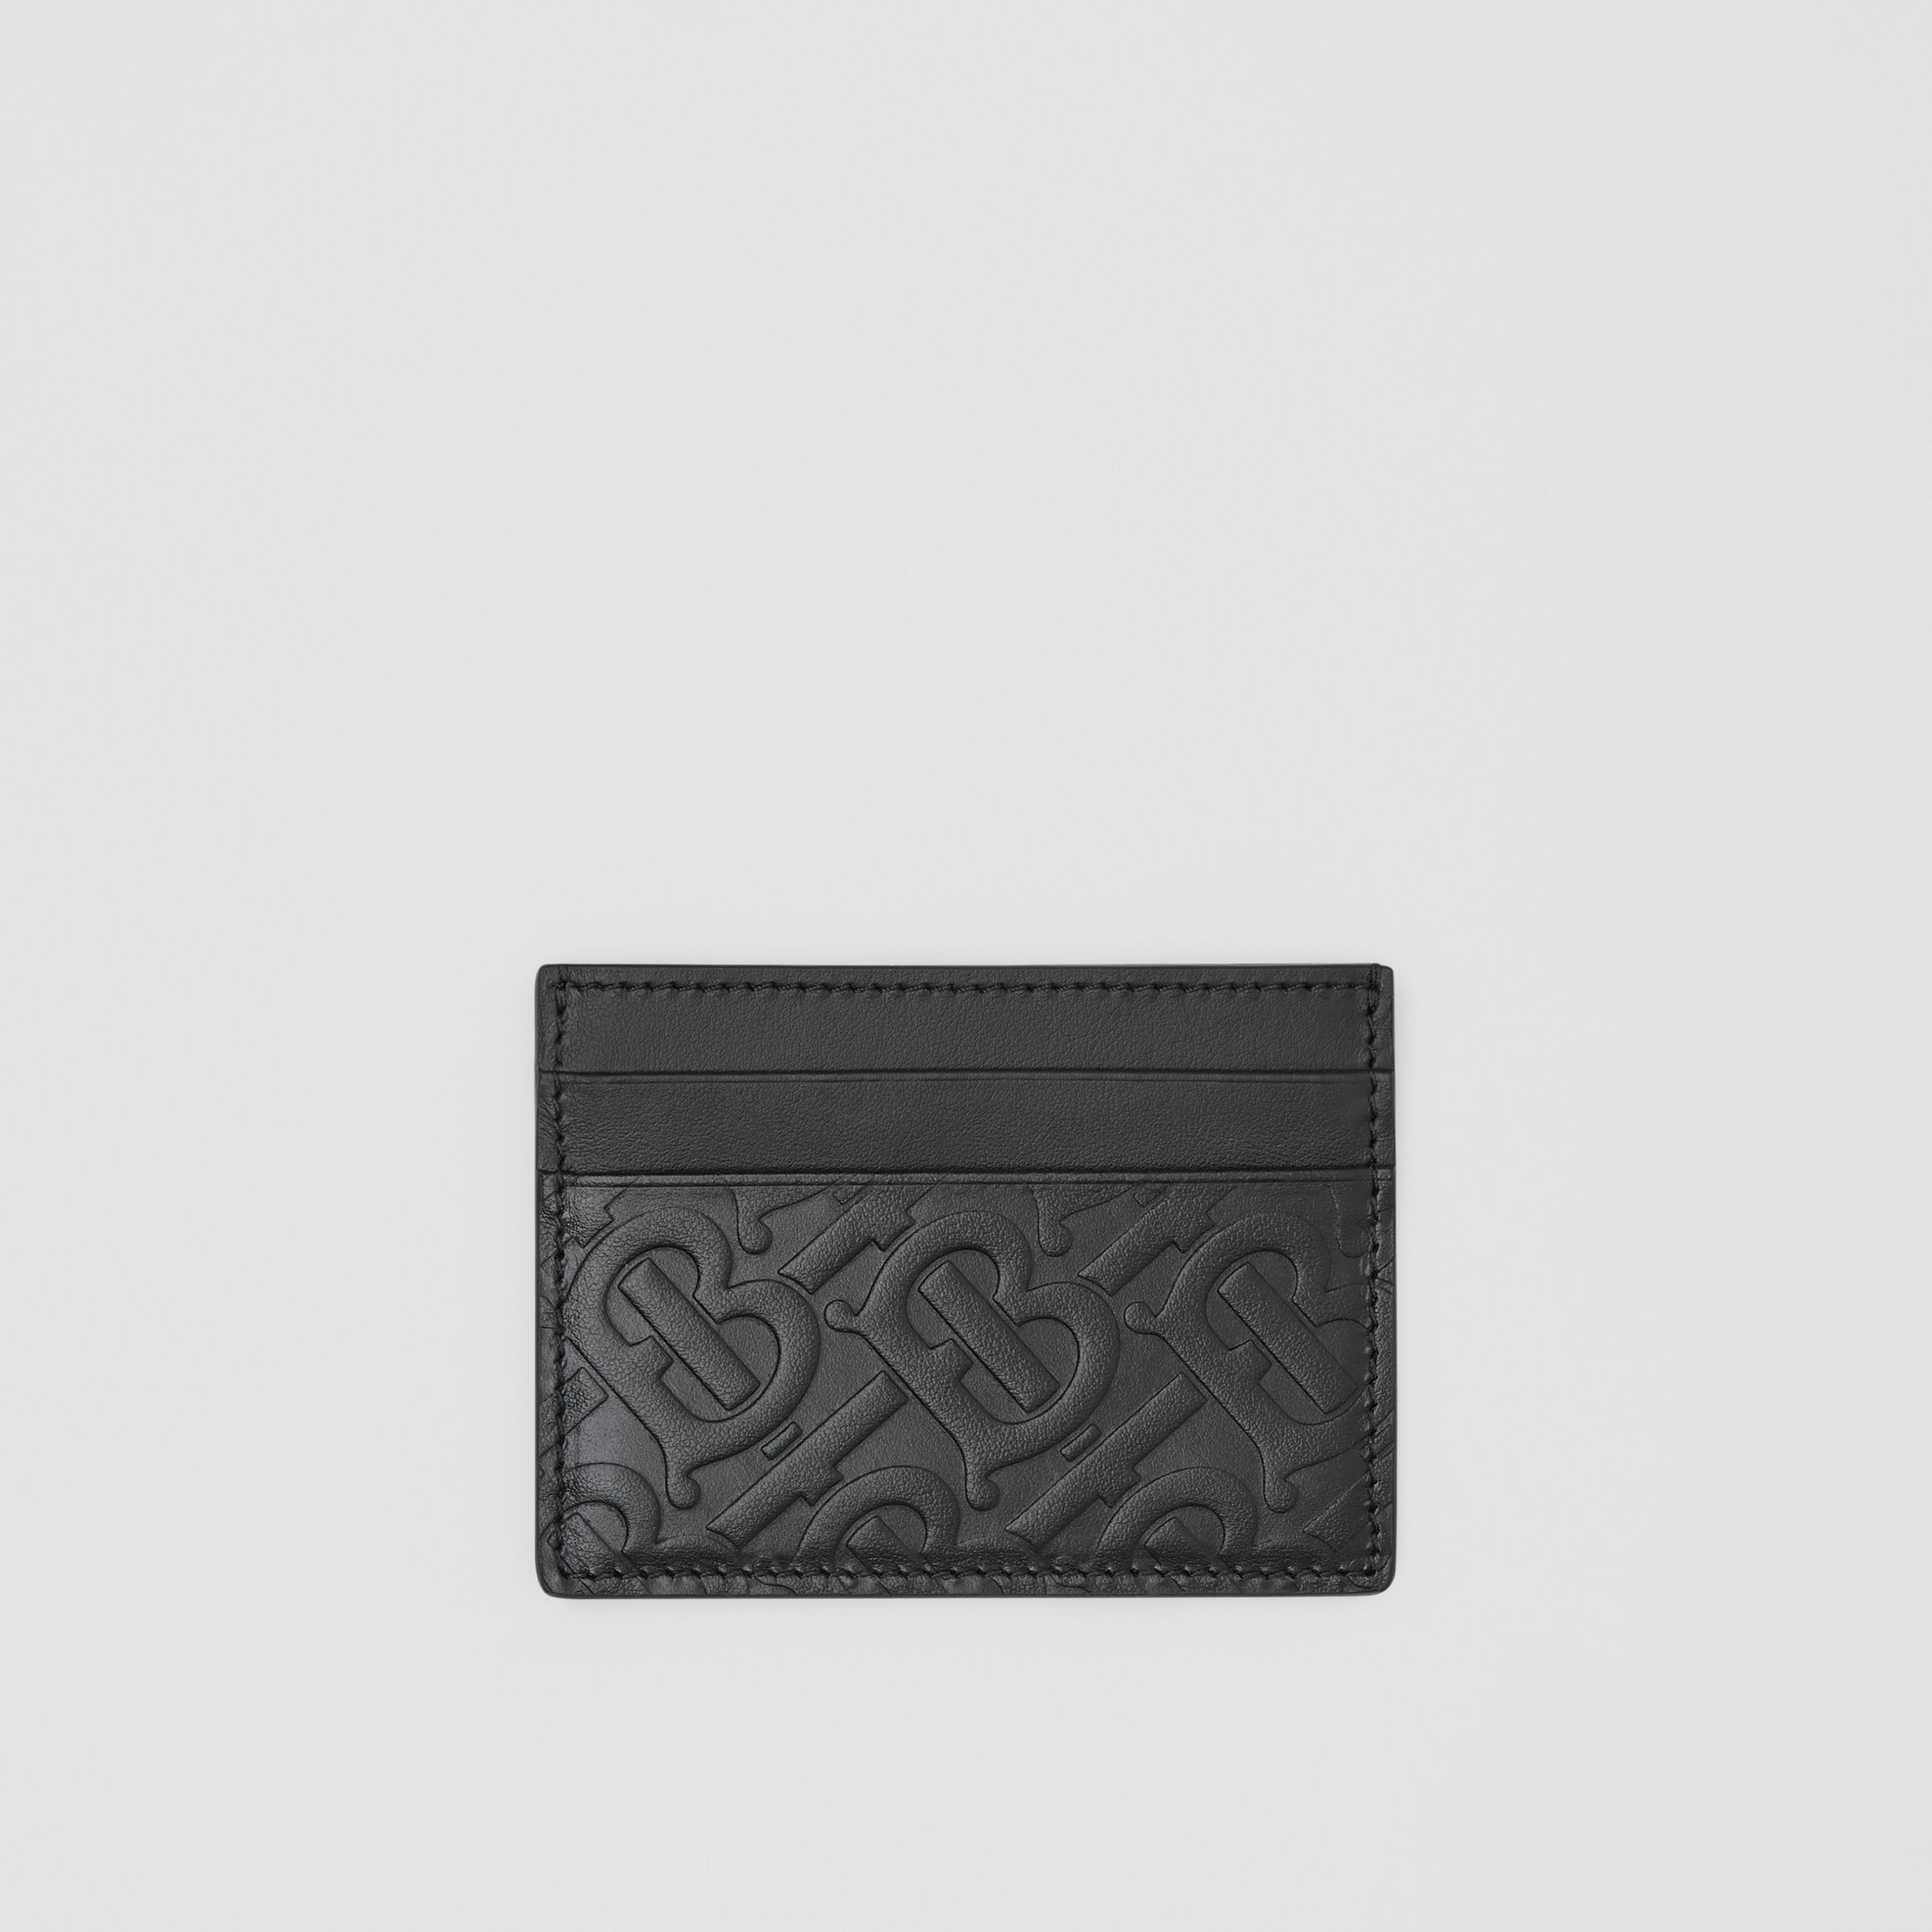 Monogram Leather Card Case in Black | Burberry - 1